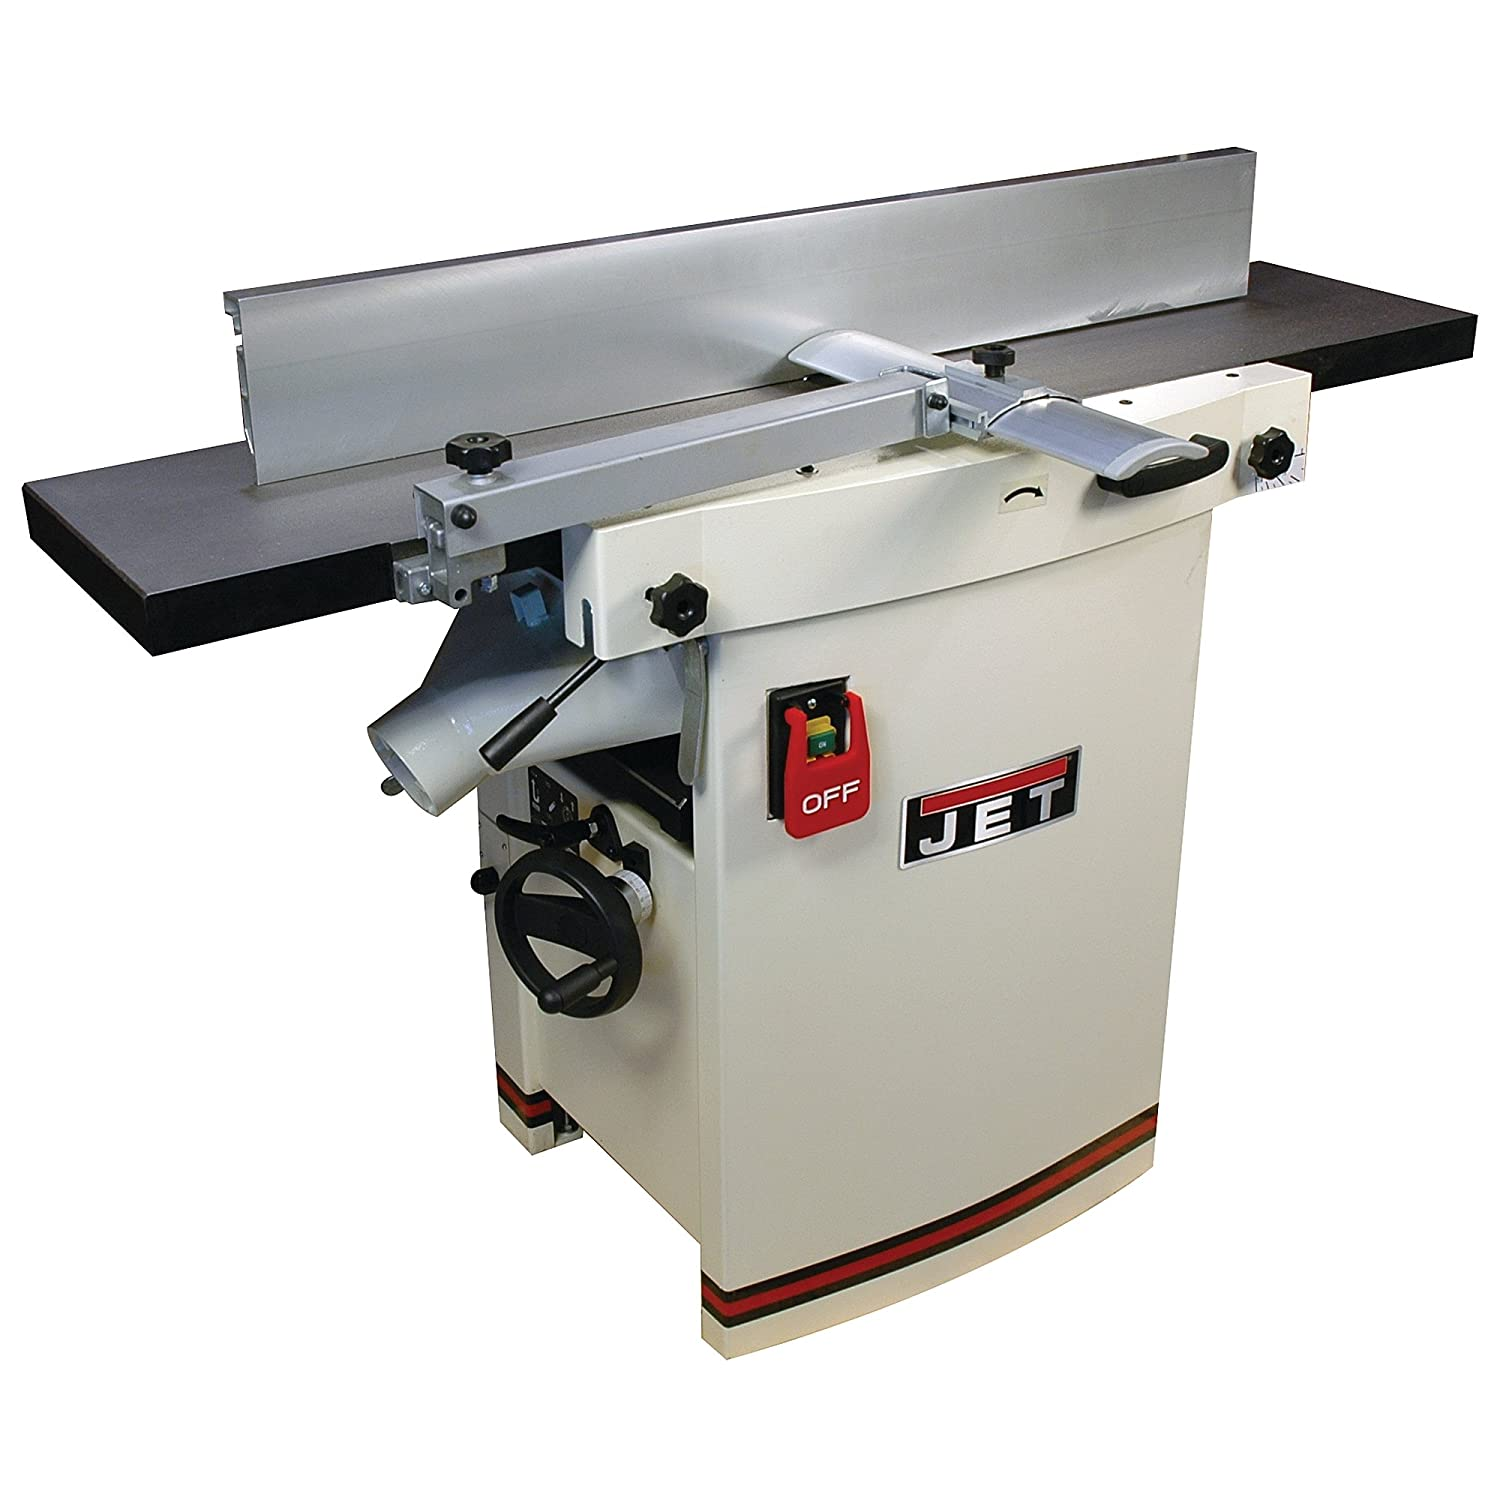 Top 7 Best Jointers For Woodworking